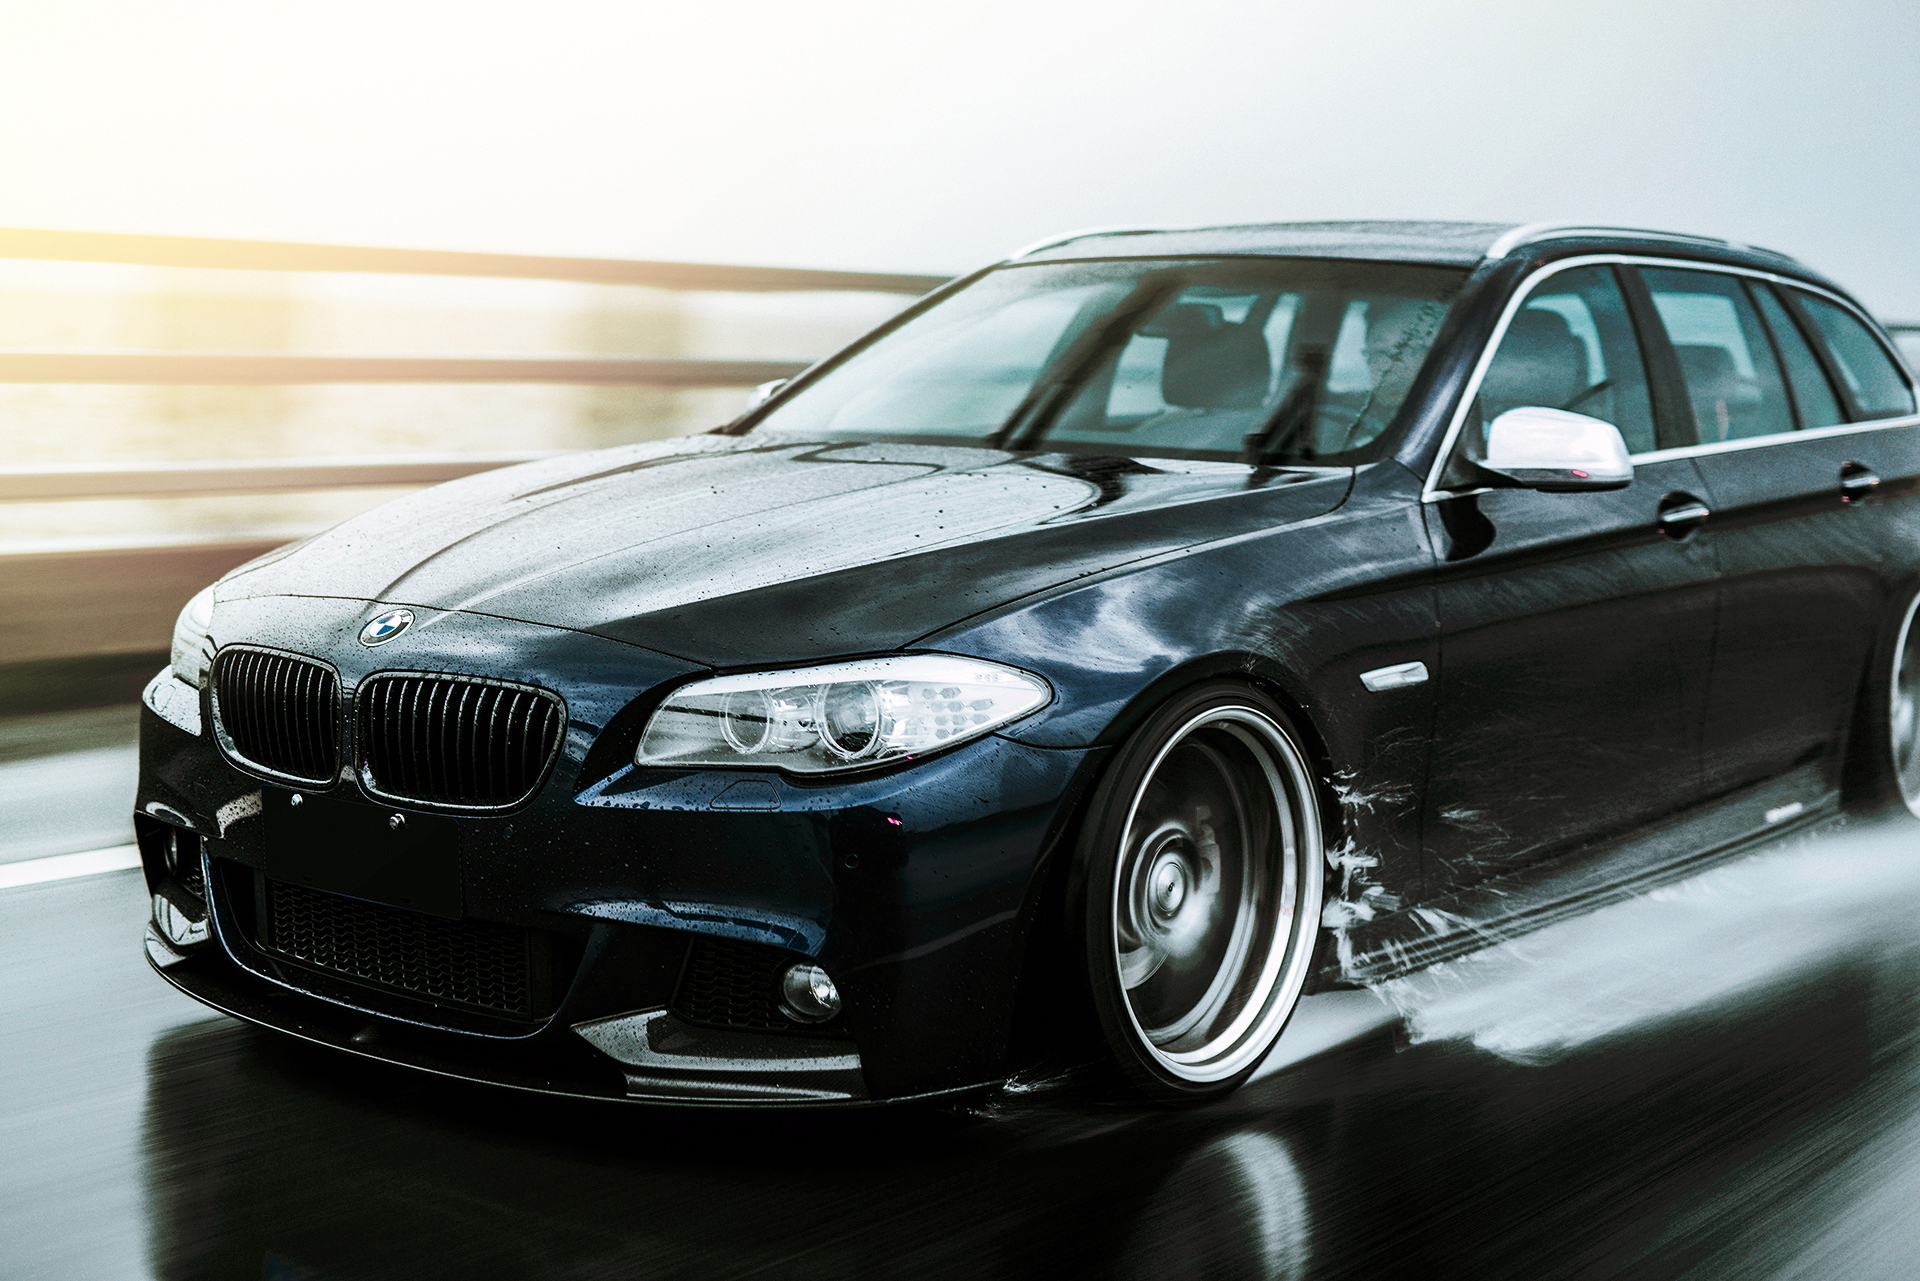 rolling shots in the rain of bmw f11 touring. Black Bedroom Furniture Sets. Home Design Ideas